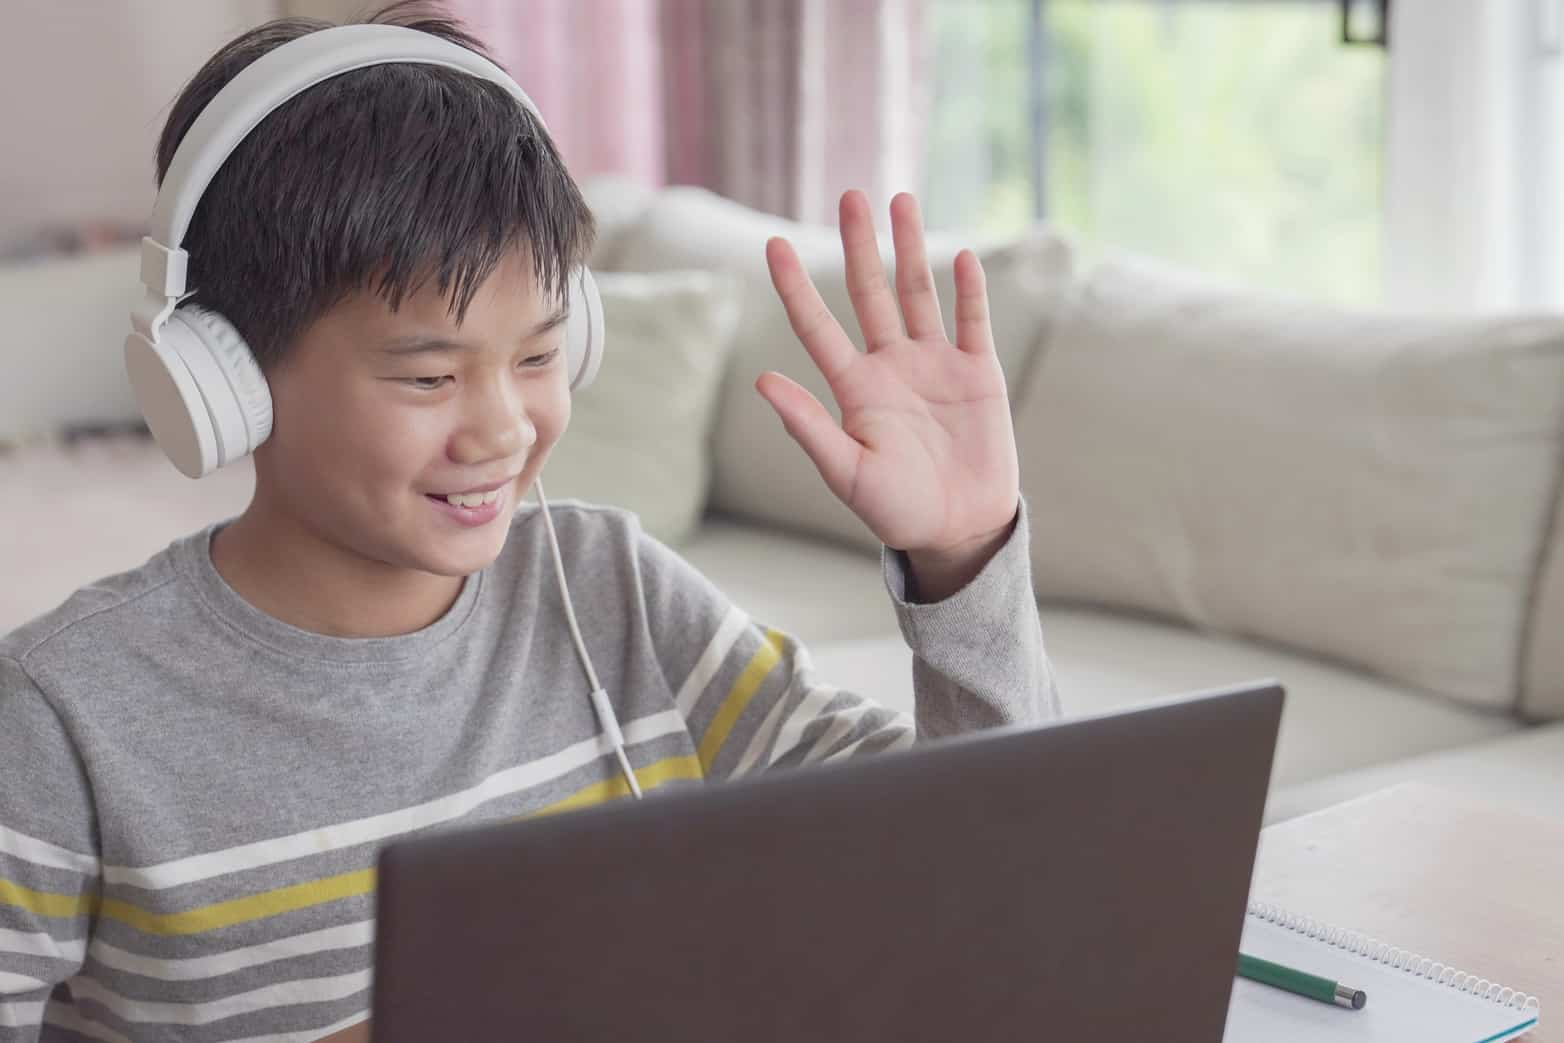 Elementary school boy having an online discussion during class.education, social distancing,homeschooling,learning remotely during covid-19 coronavirus, new